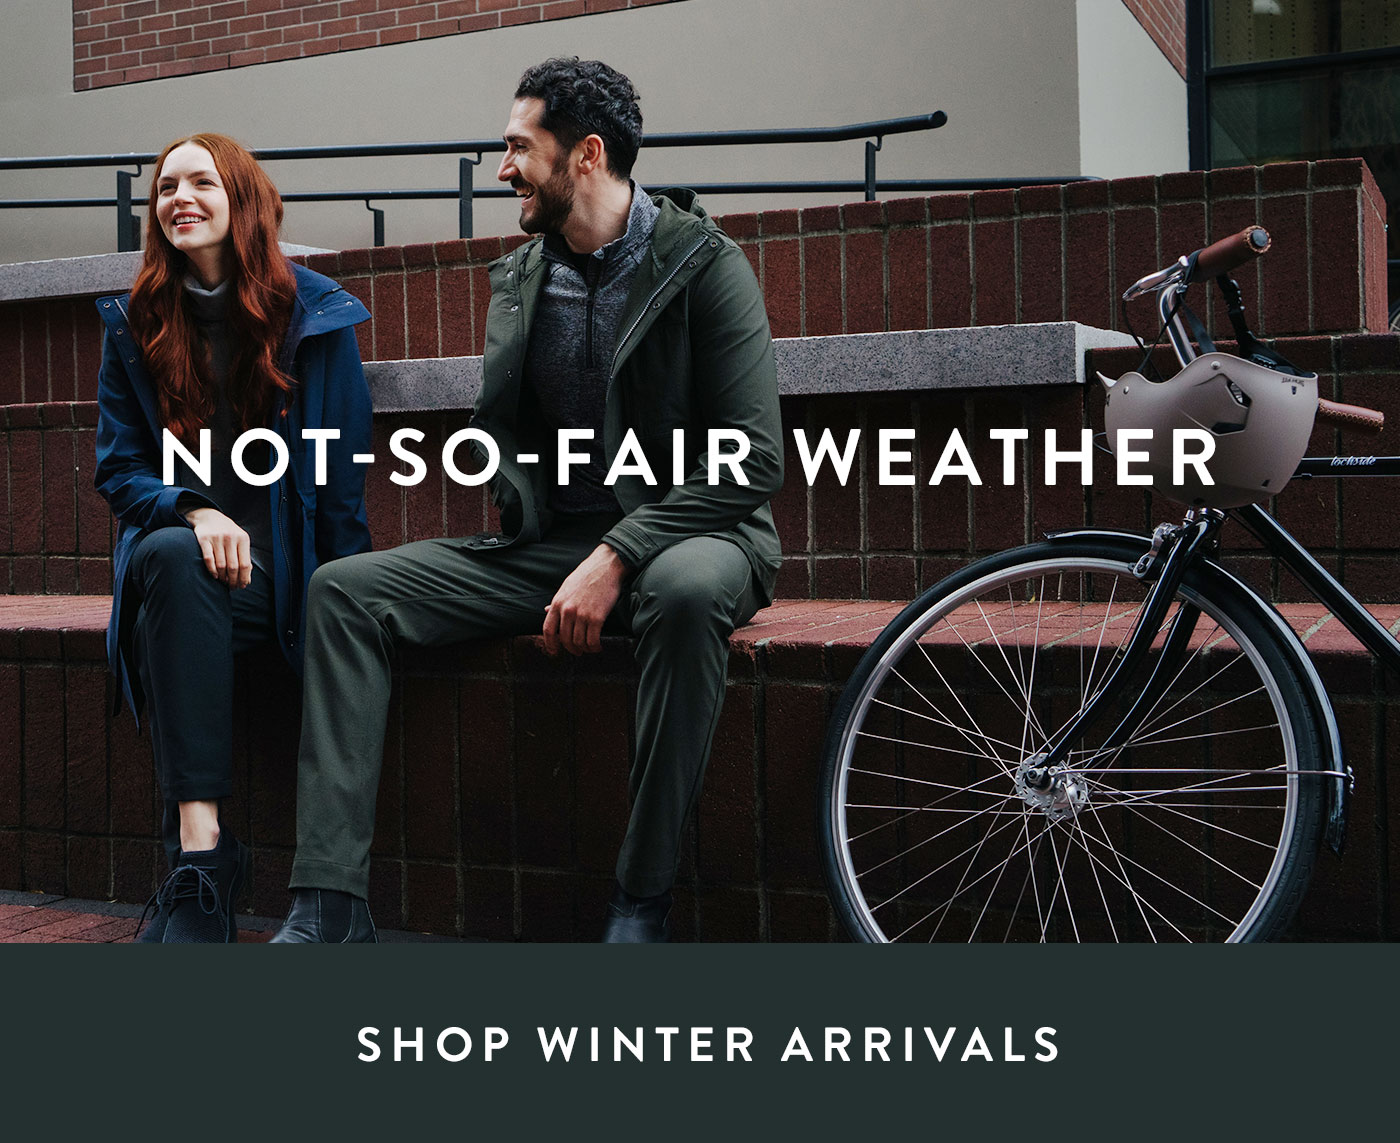 Our ultimate weatherproof gear is here